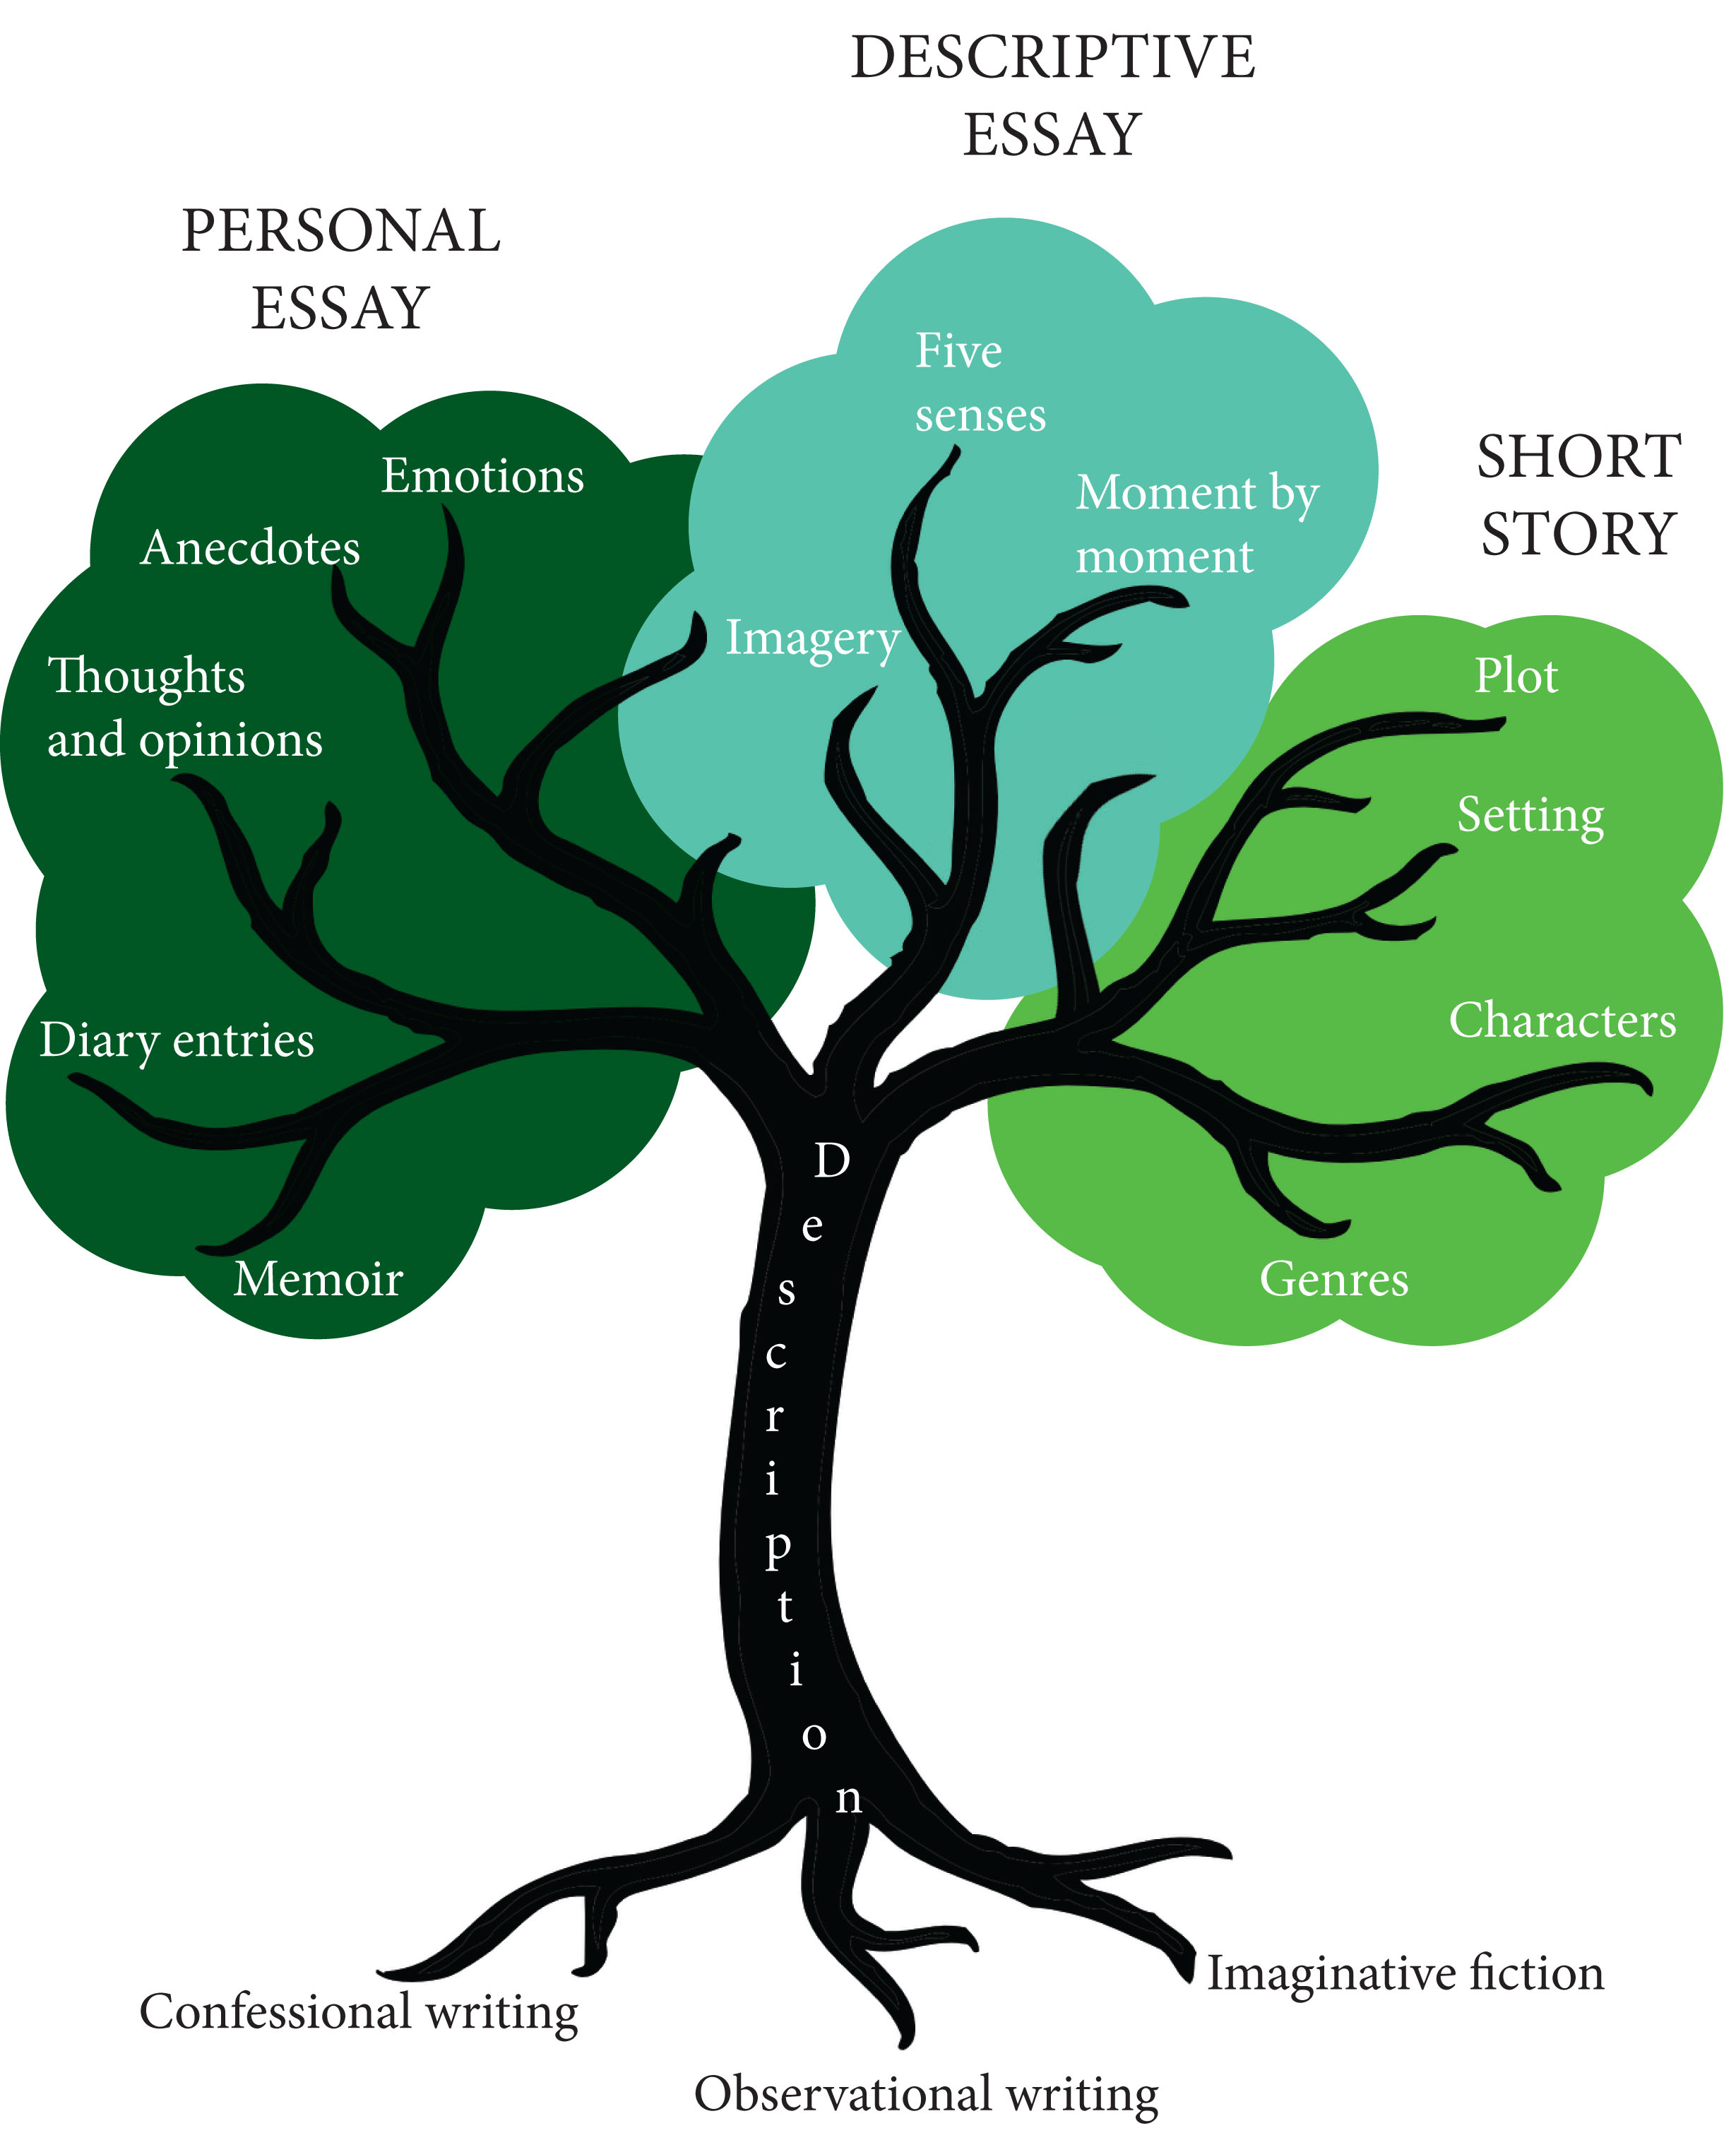 007 Tree Diagram Elements Of Descriptive Essay Exceptional Key A And Features Full